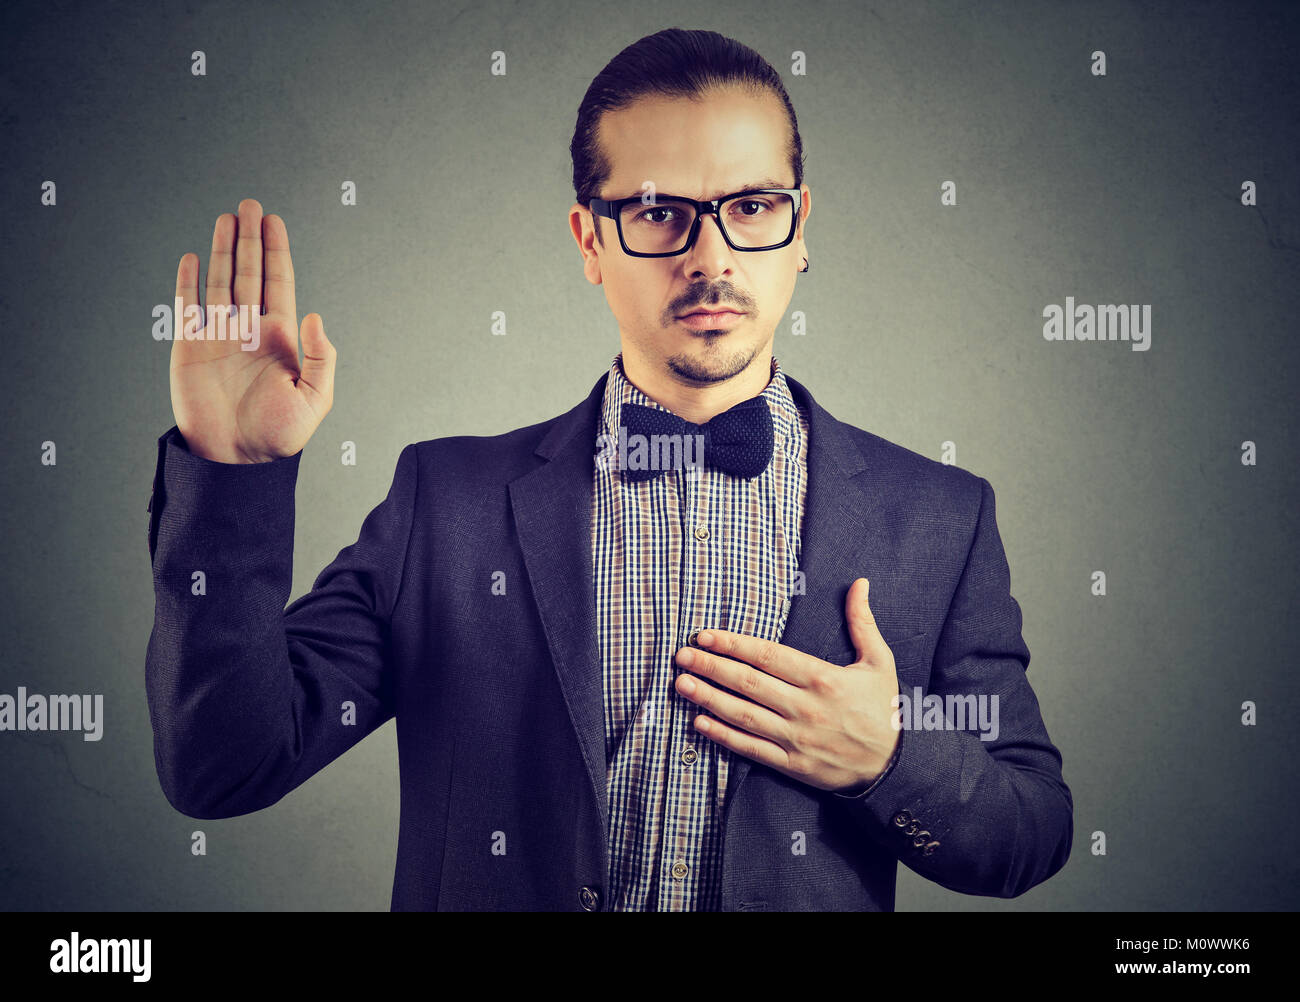 Young man in formal clothing and eyeglasses swearing in being trustworthy while looking at camera. - Stock Image